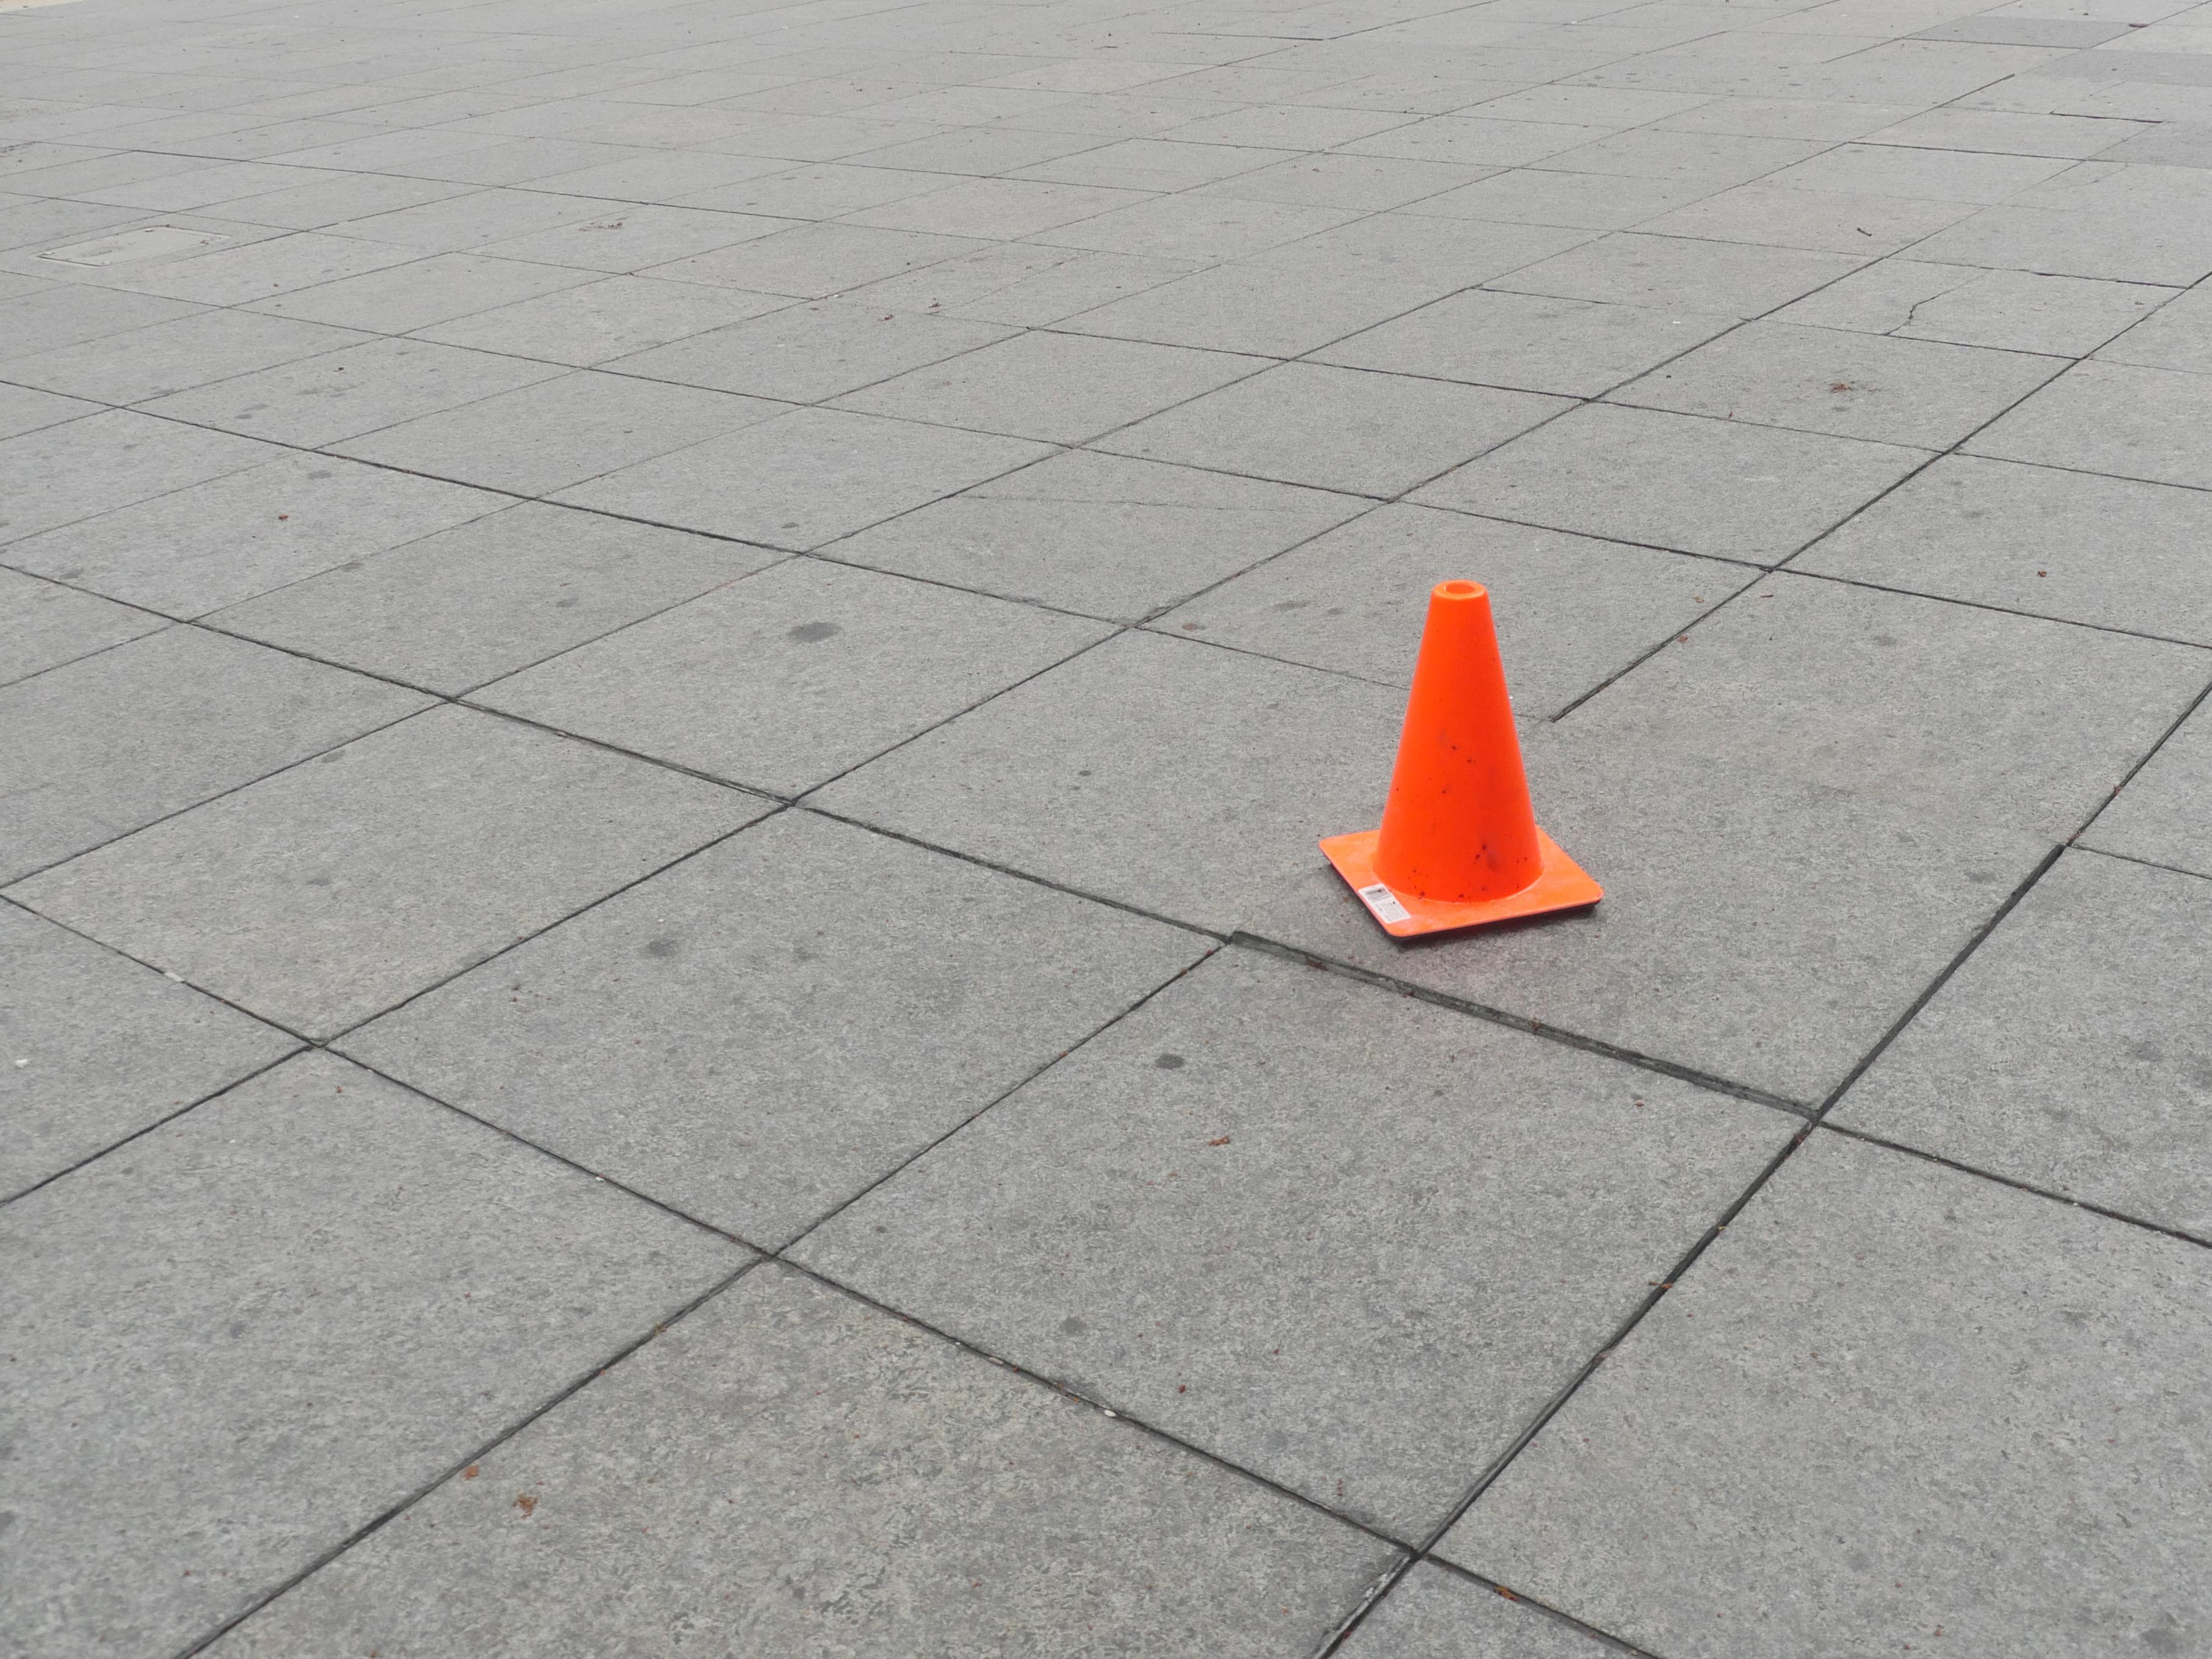 A lonely orange hazard cone sits on a grid of gray tiles.